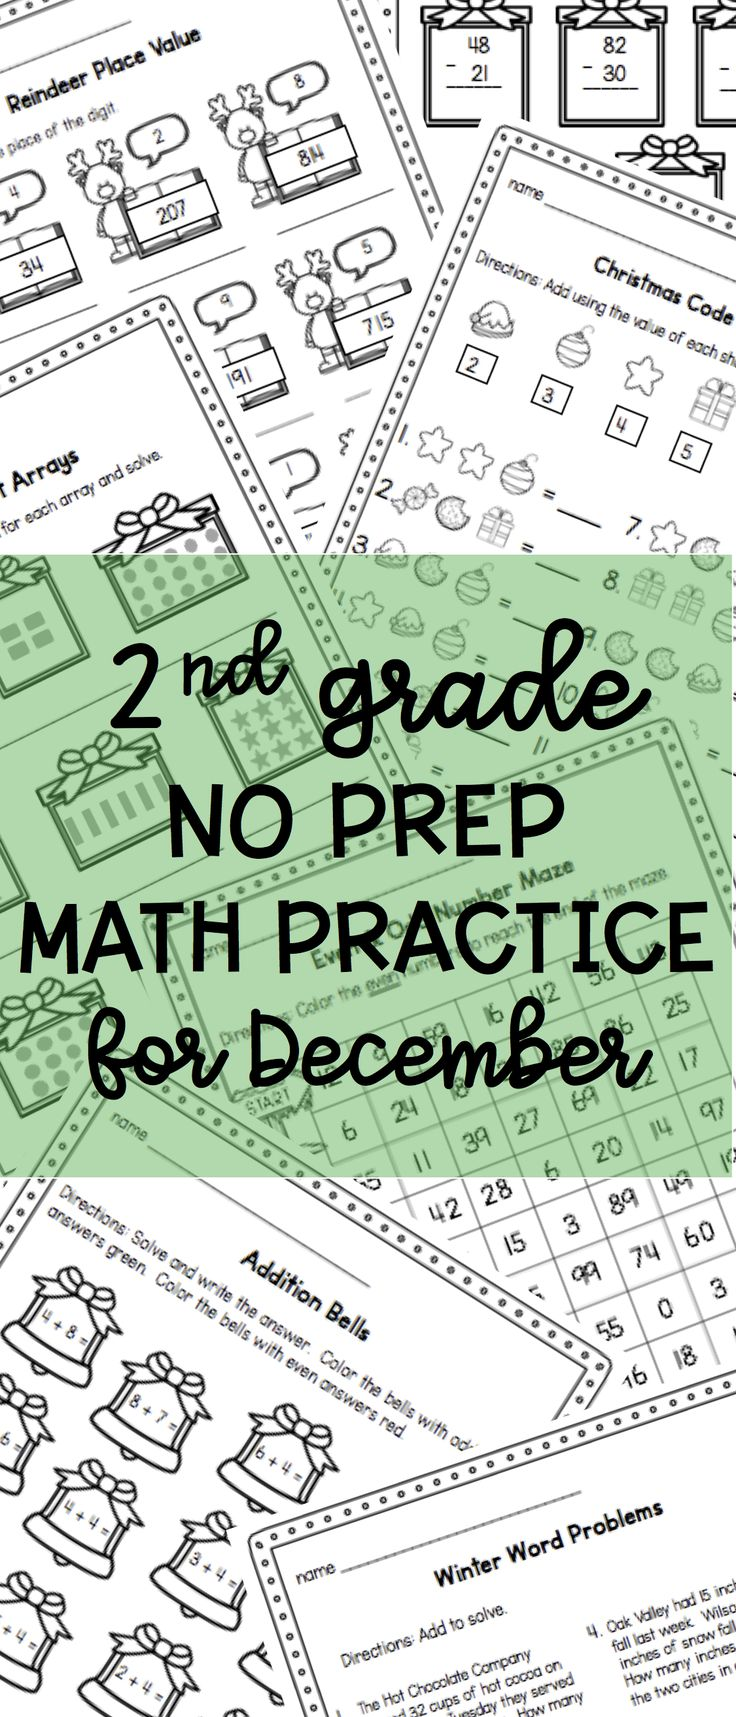 No prep math pages  - 2nd grade math practice and review for December - Christmas worksheets